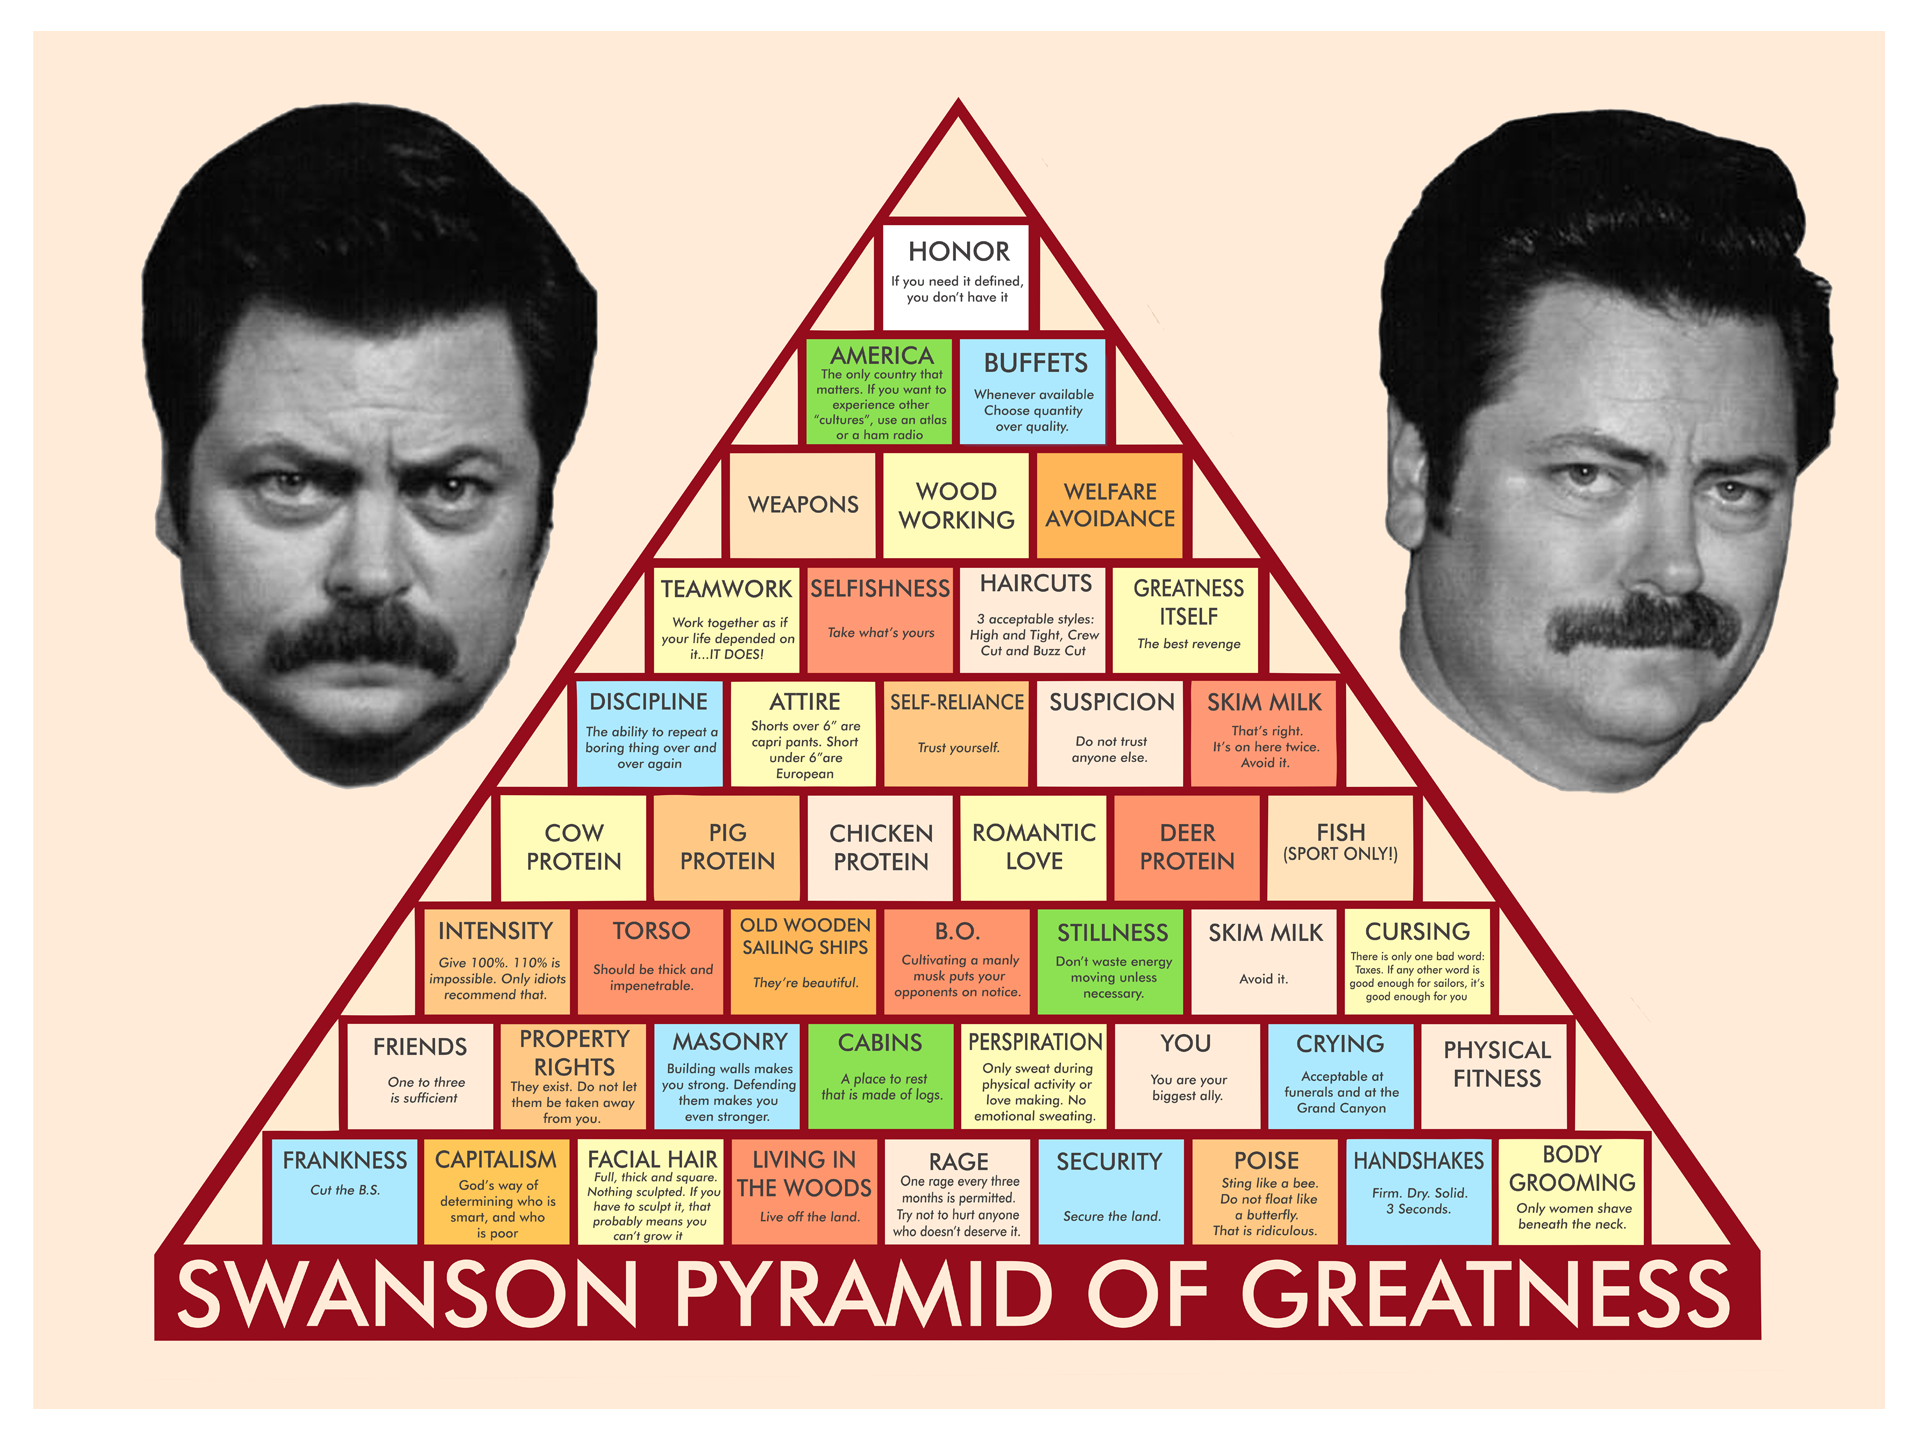 Adaptable image pertaining to ron swanson pyramid of greatness printable version